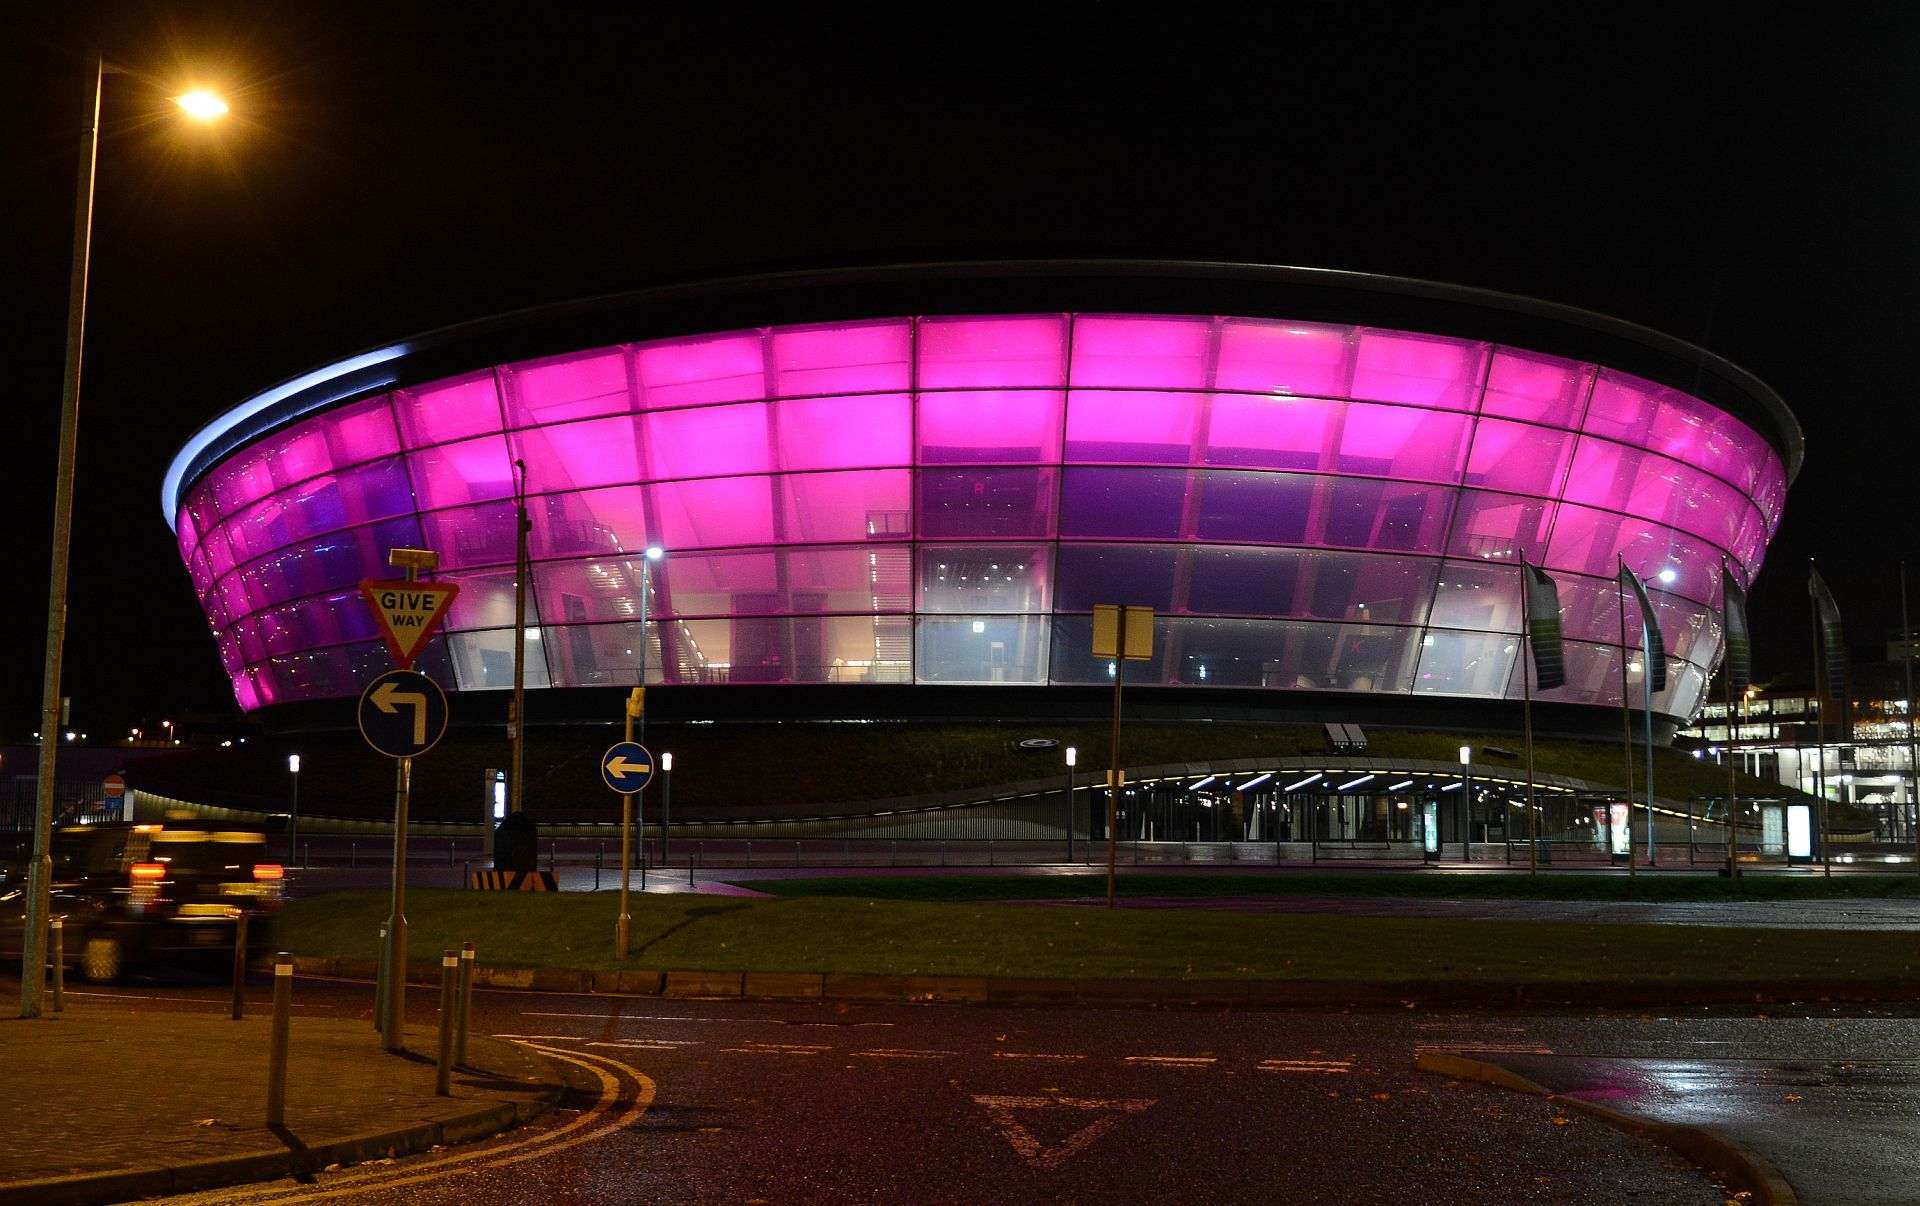 The sse hydro turns pink for breast cancer research day wear it pink friday 25 october image courtesy of getty